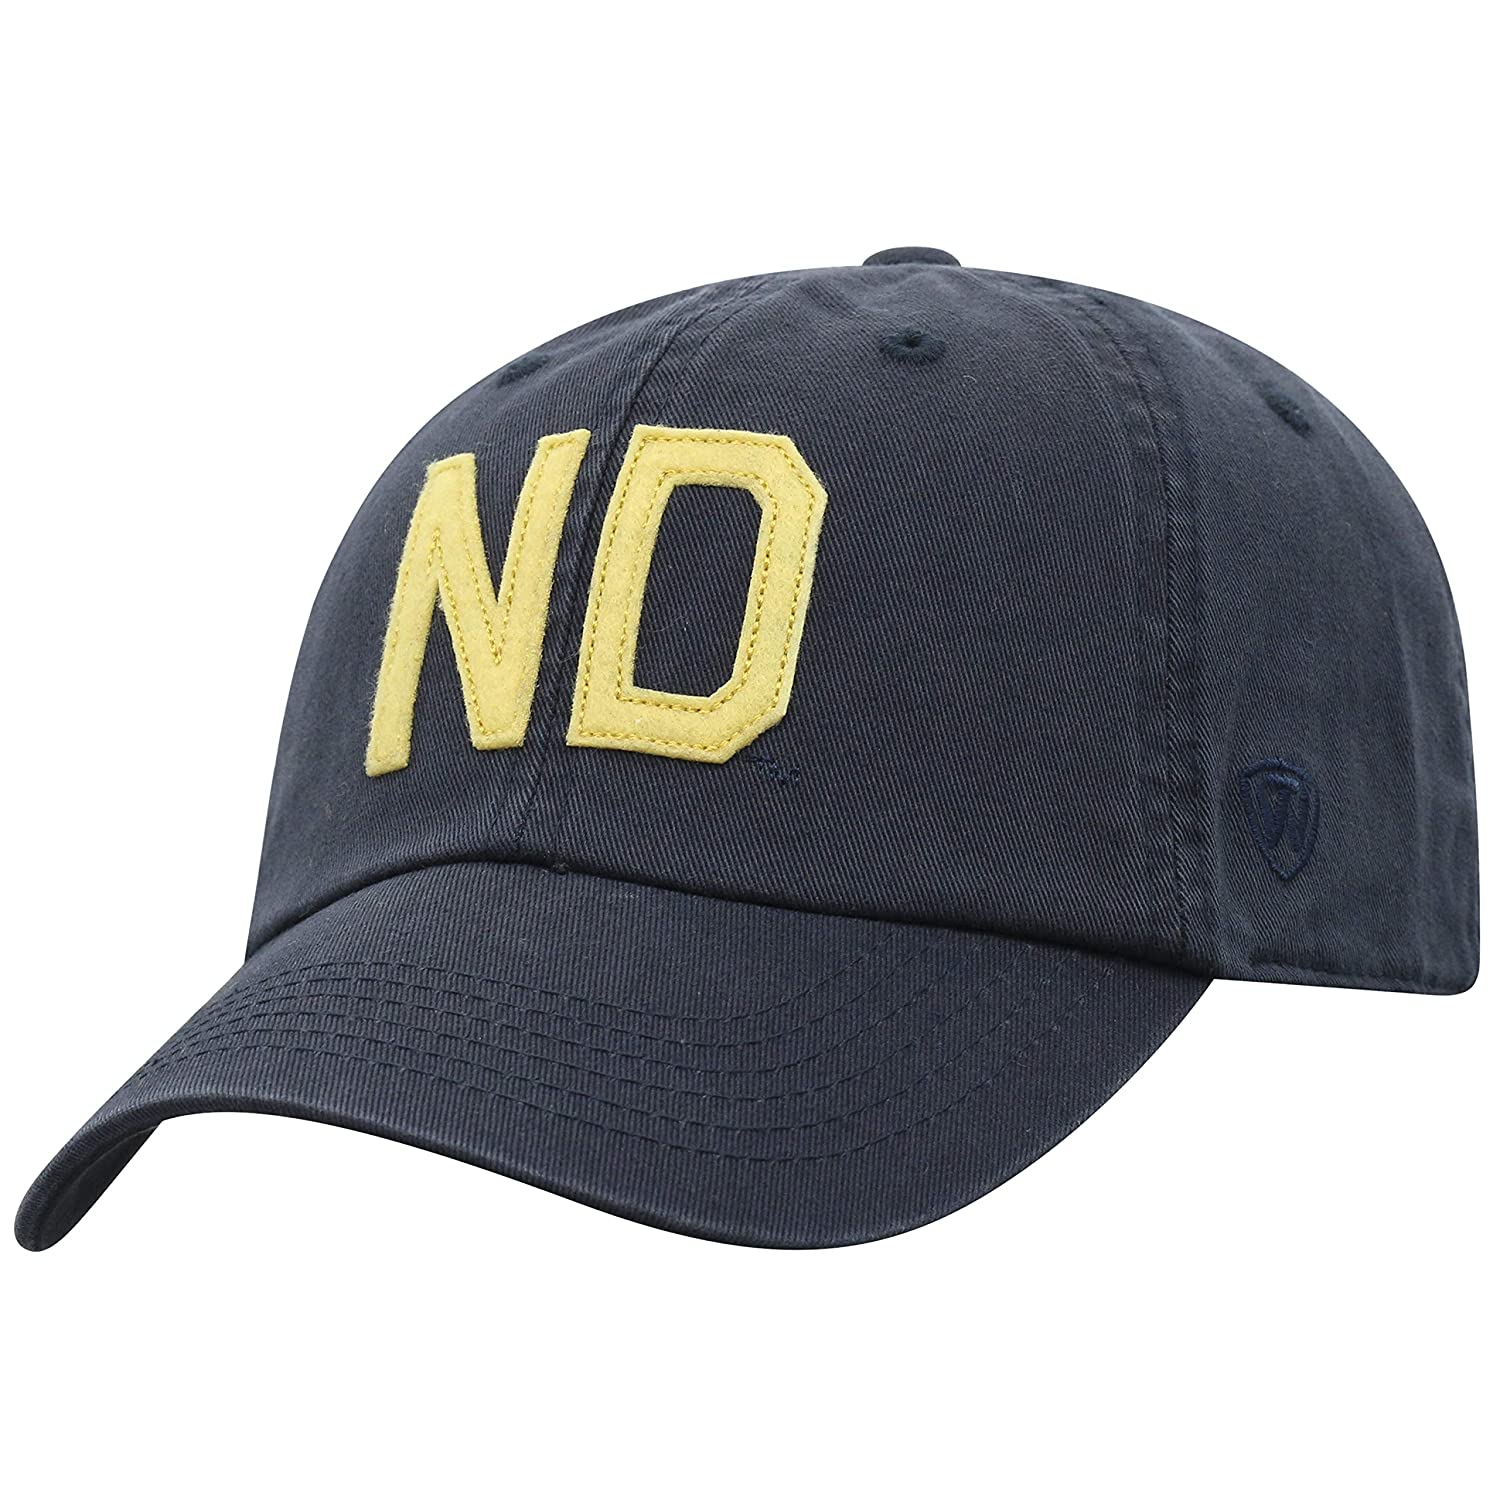 Top of the World NCAA-Cotton Crew-District-Big Letters-Adjustable Strapback-Hat Cap